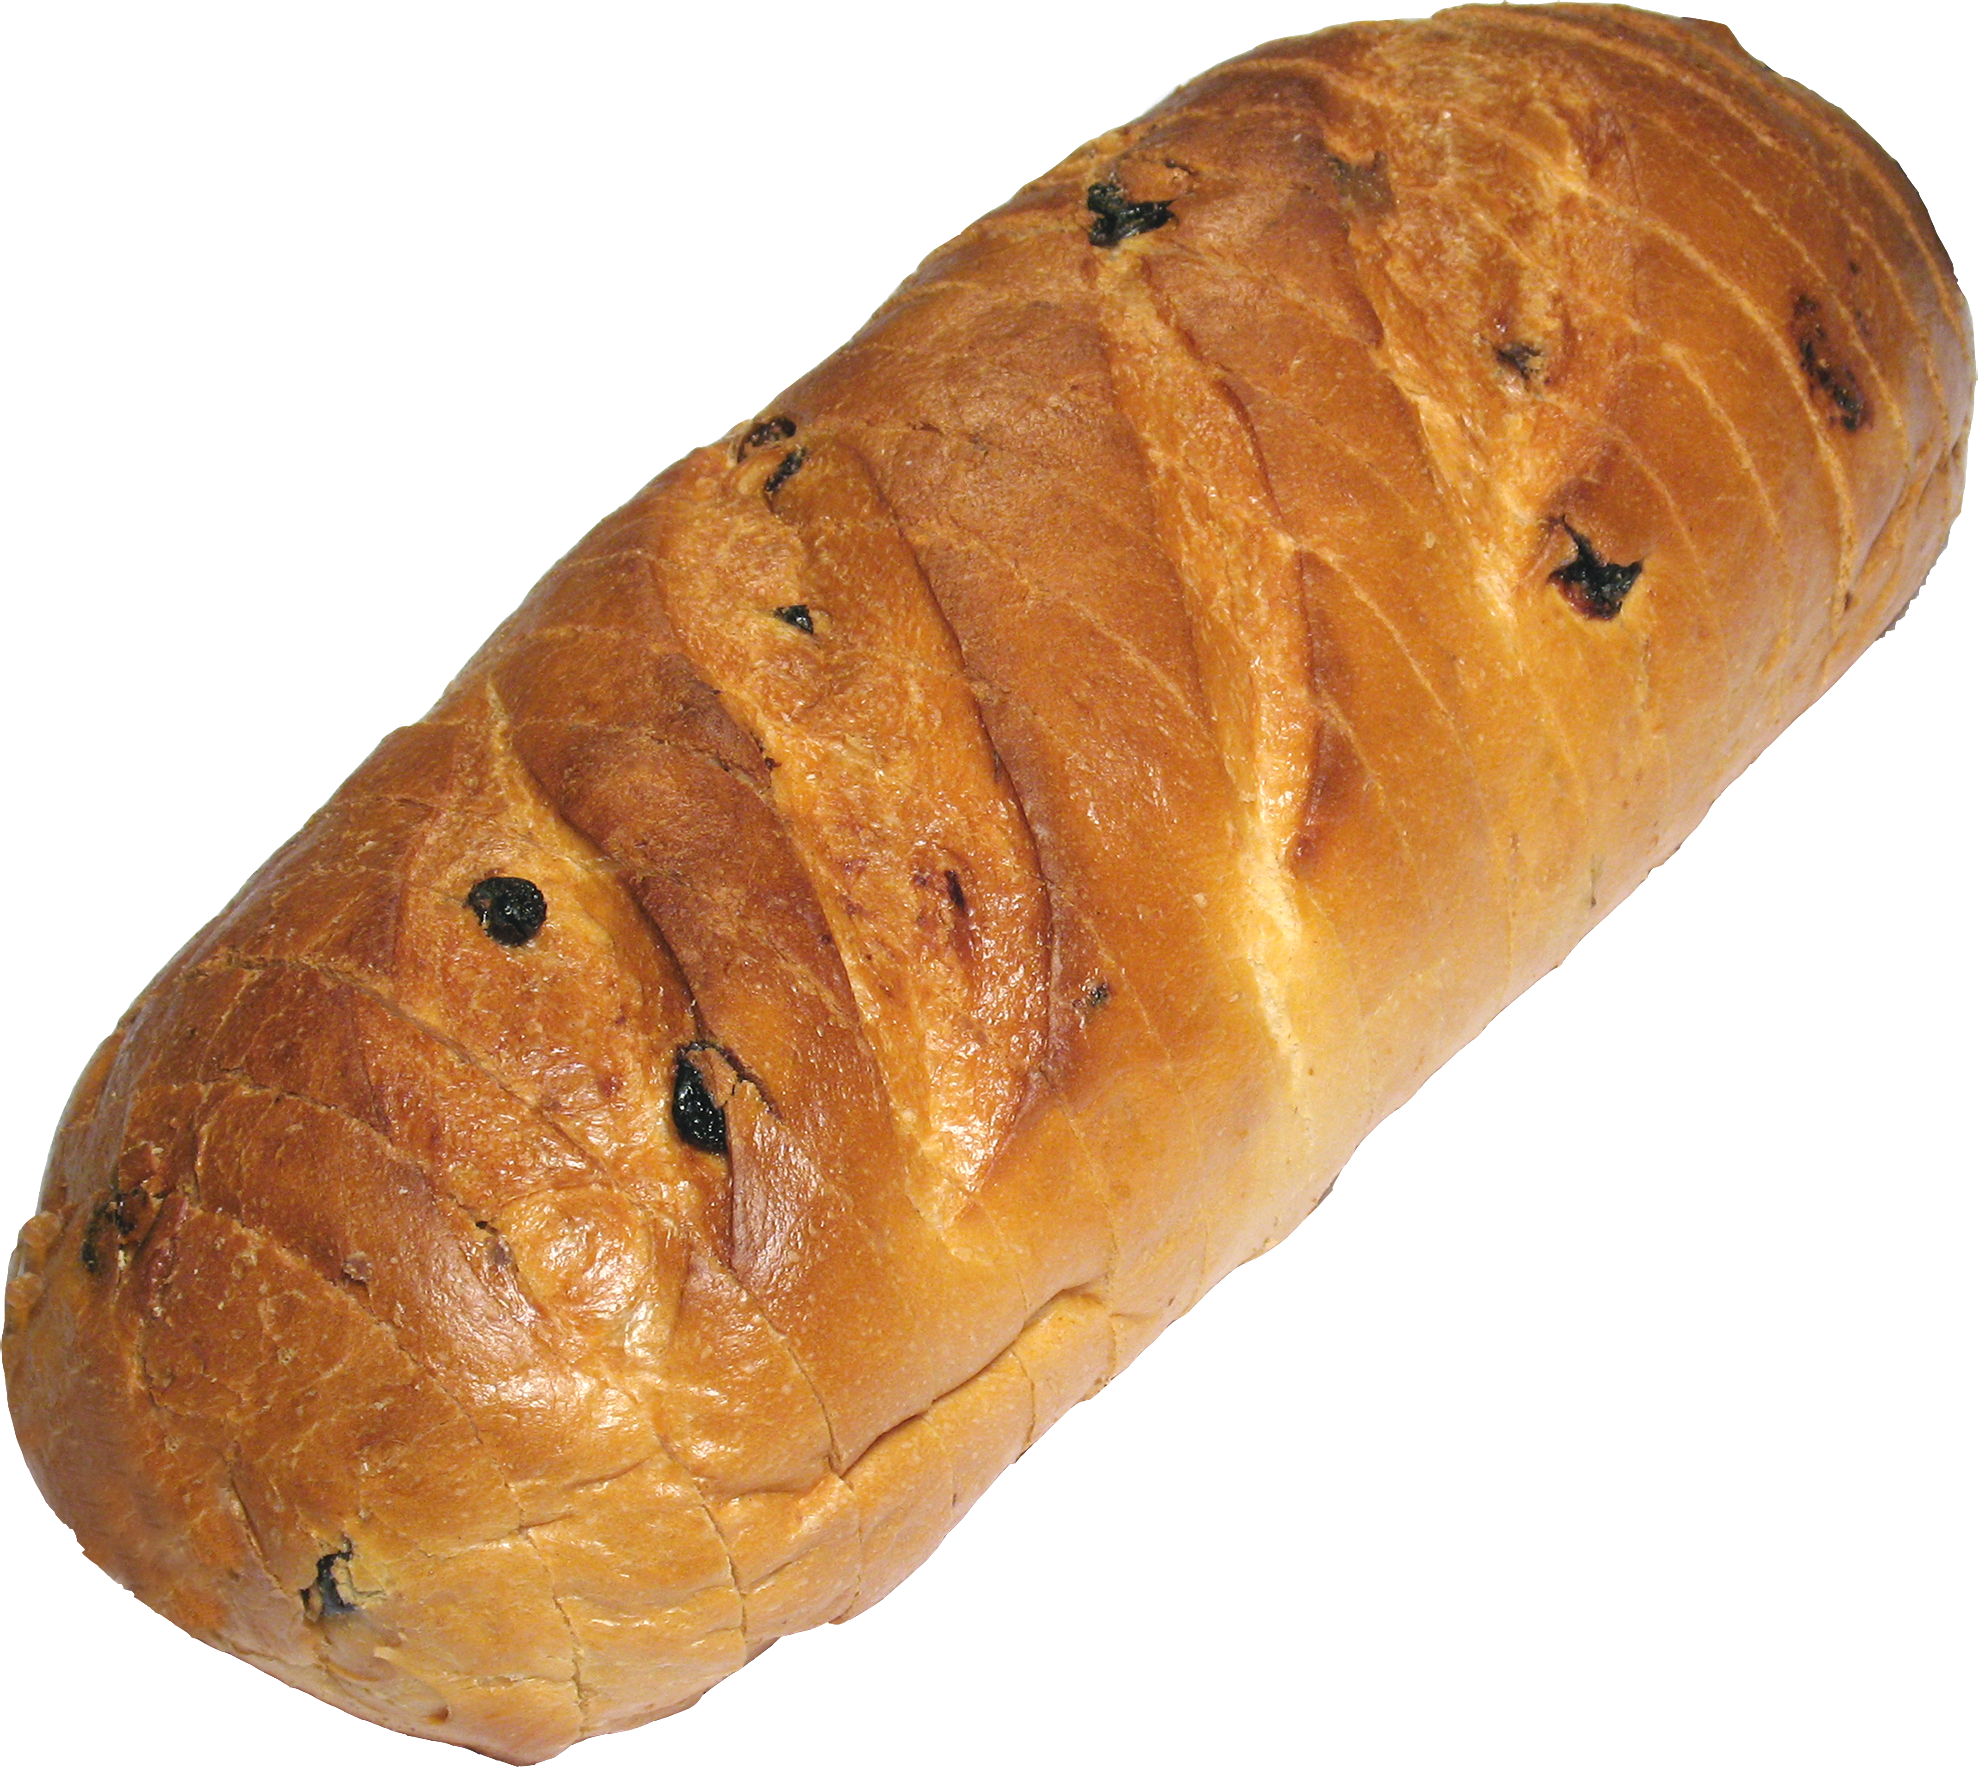 clip royalty free library Toast clipart stale bread. Roll free on dumielauxepices